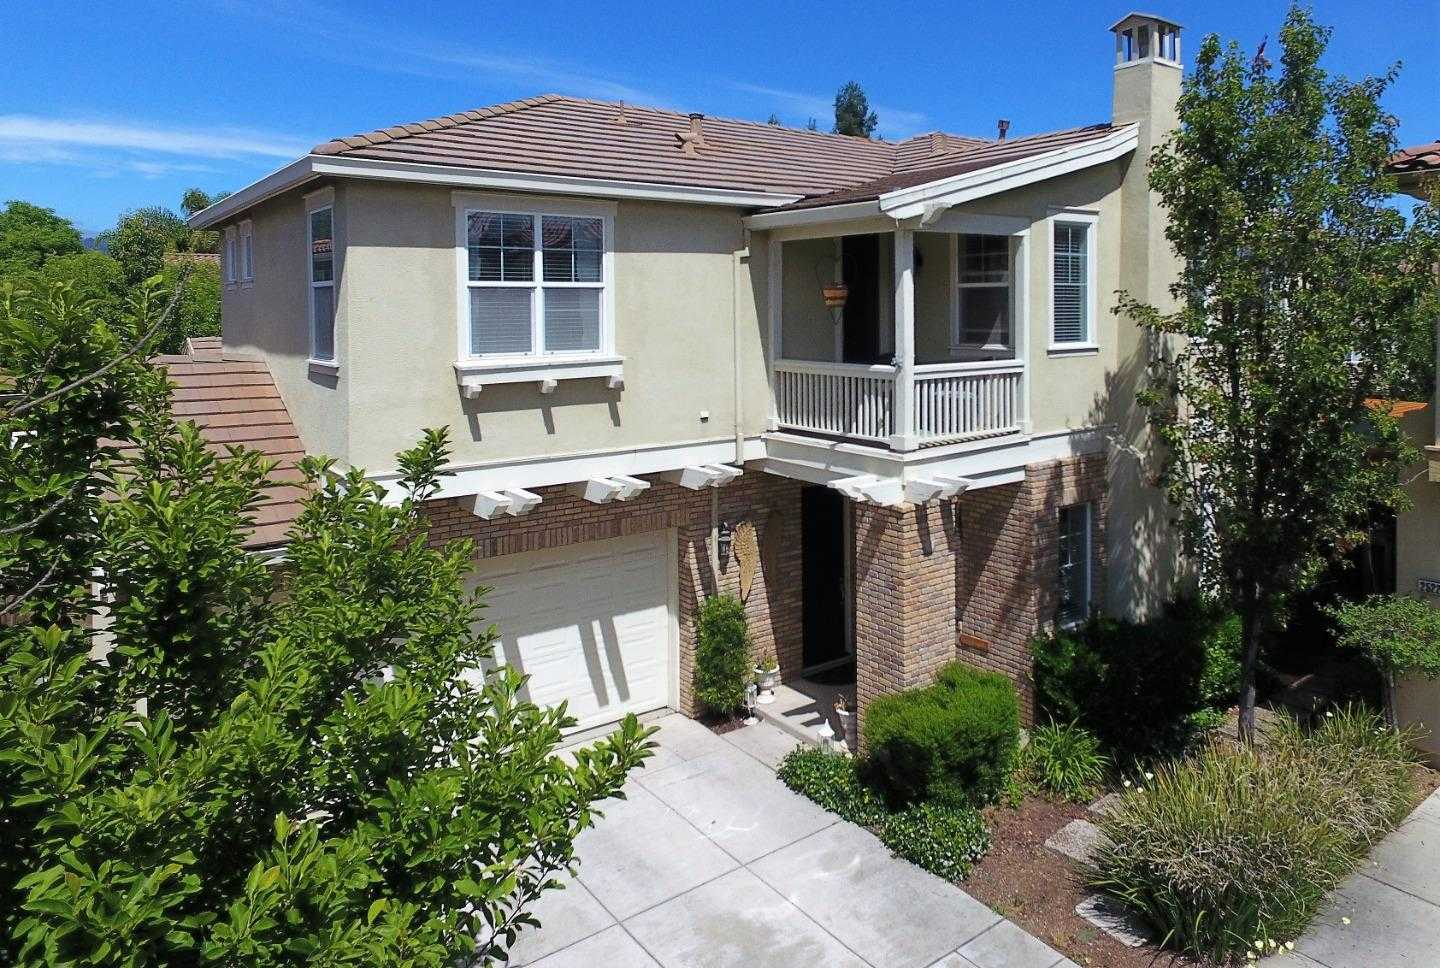 $915,000 - 4Br/3Ba -  for Sale in Gilroy